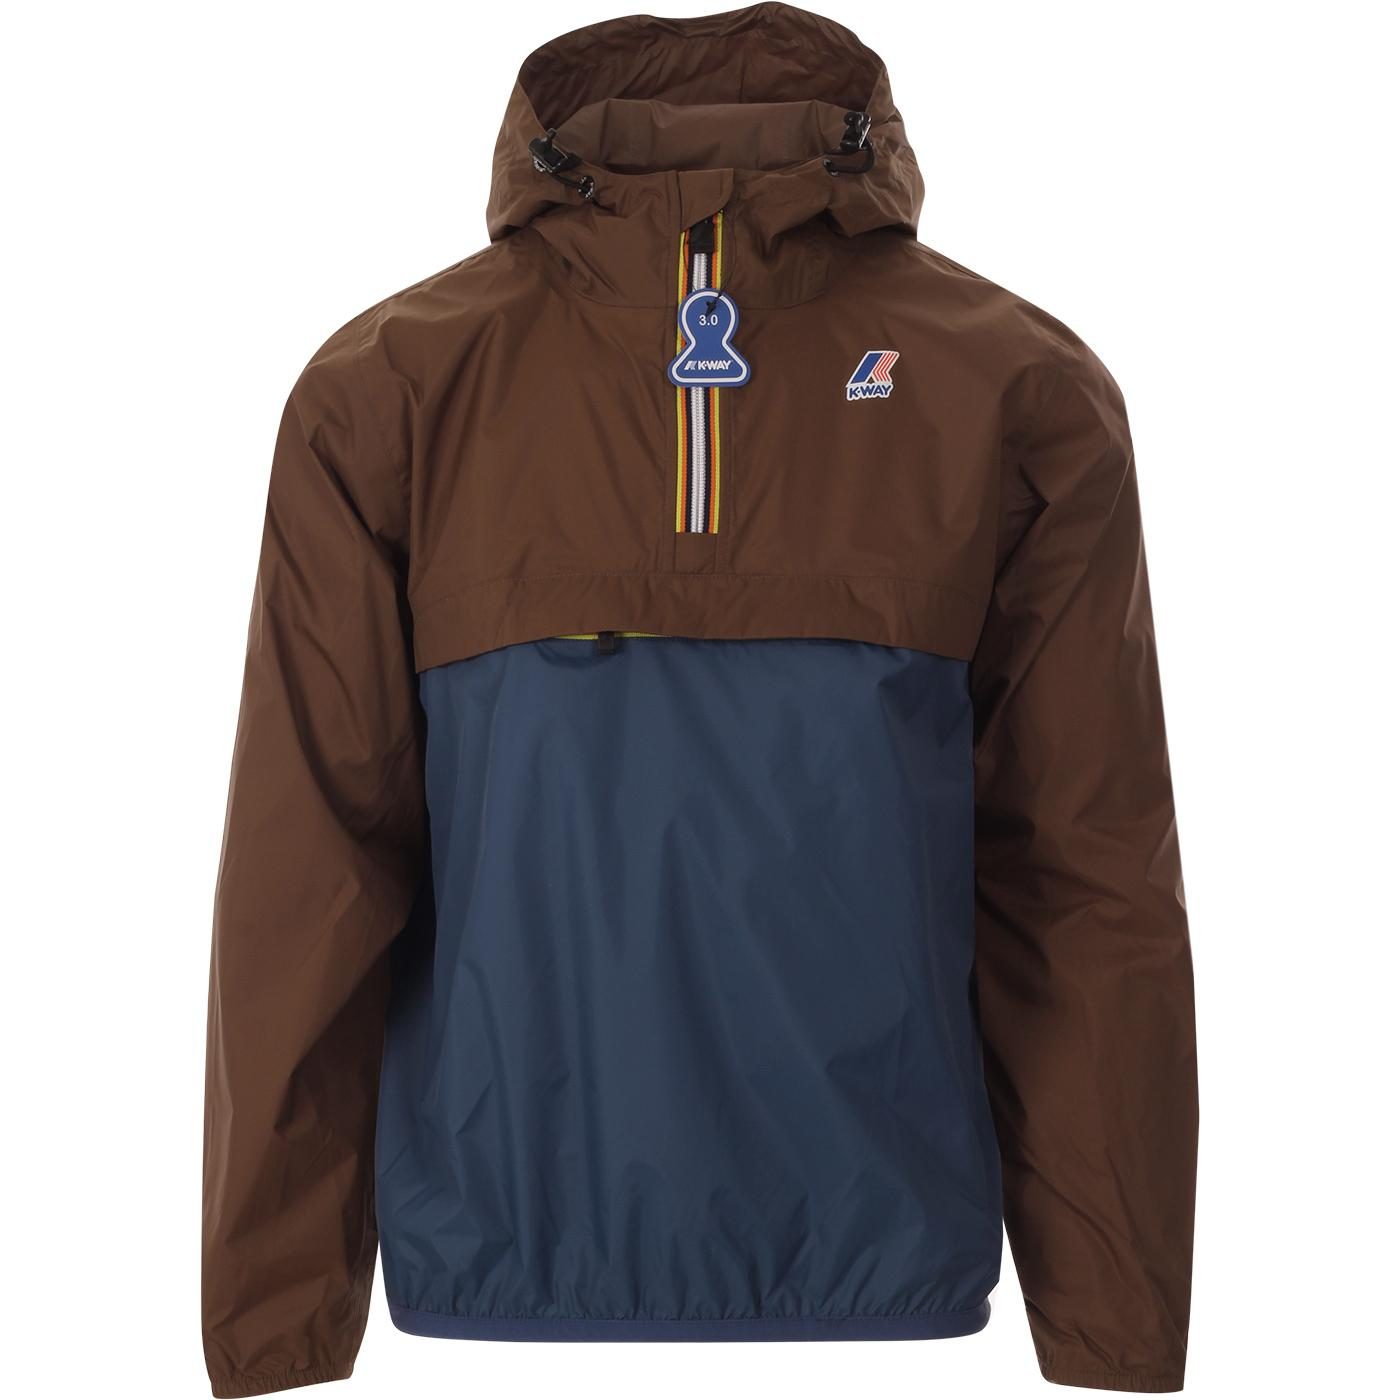 Leon Bicolor K-WAY Retro Pack-A-Mac Cagoule (BC)